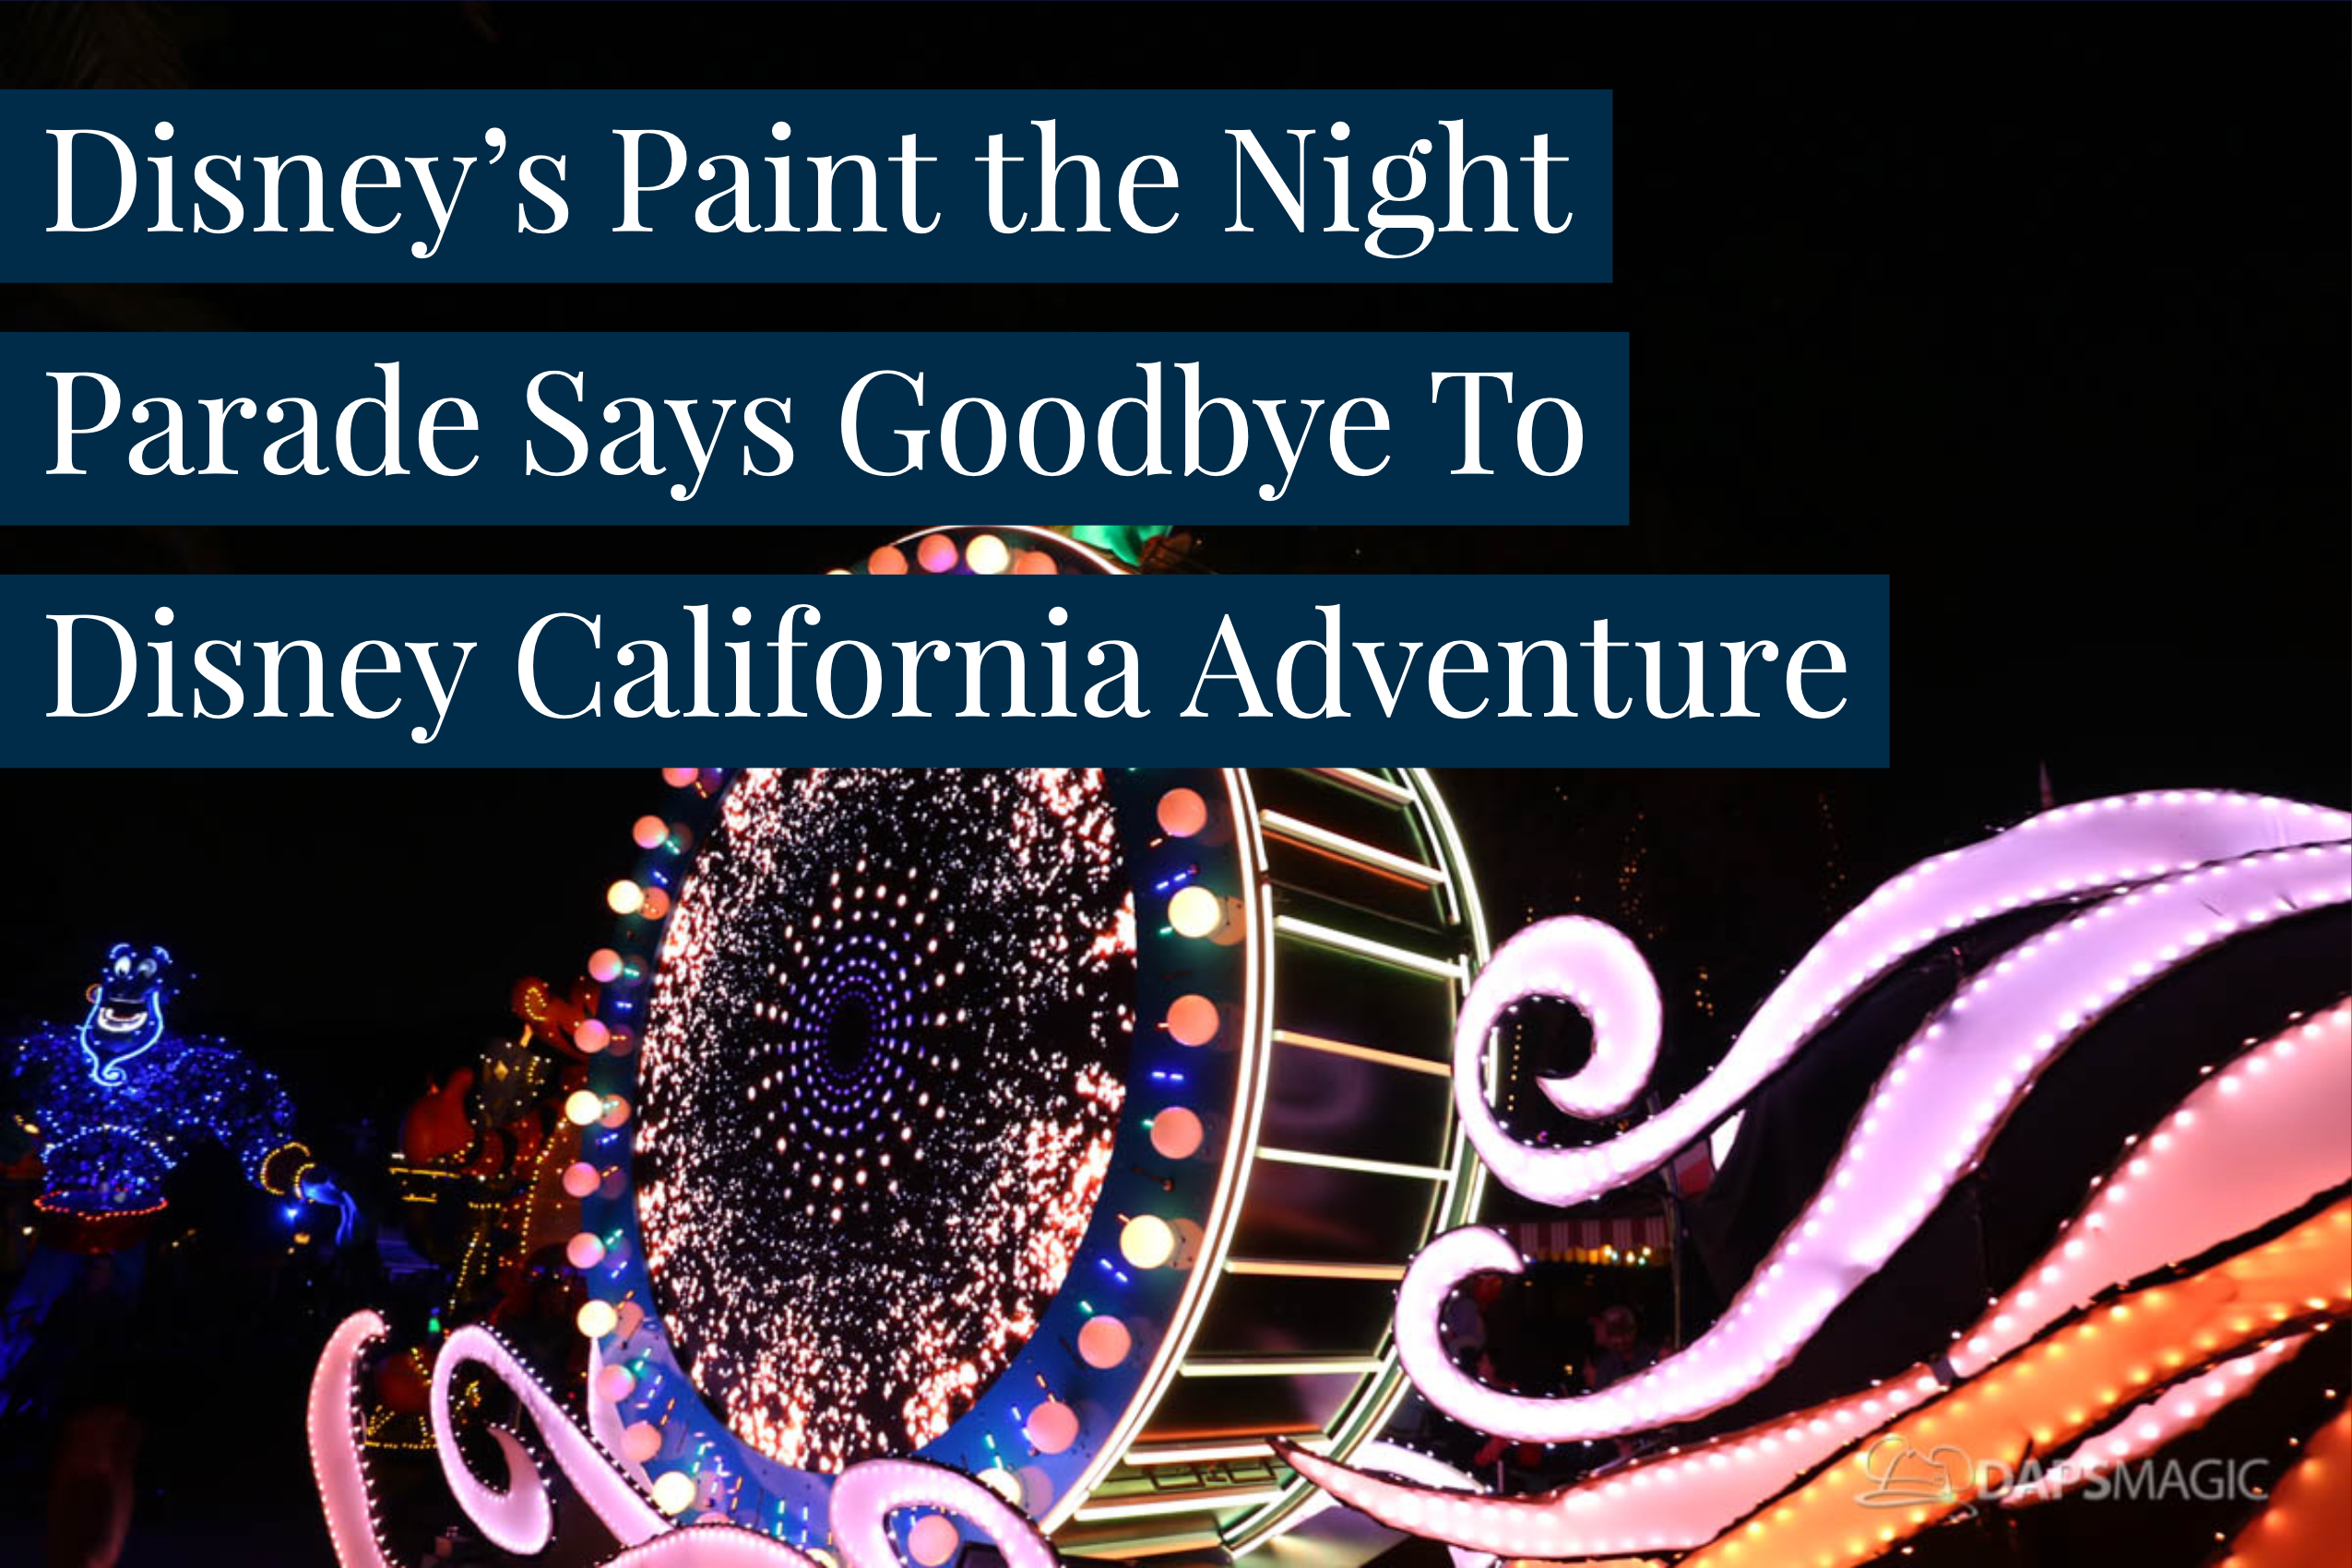 Disney's Paint the Night Parade Says Goodbye to Disney California Adventure Ahead of Festival of Holidays Arrival